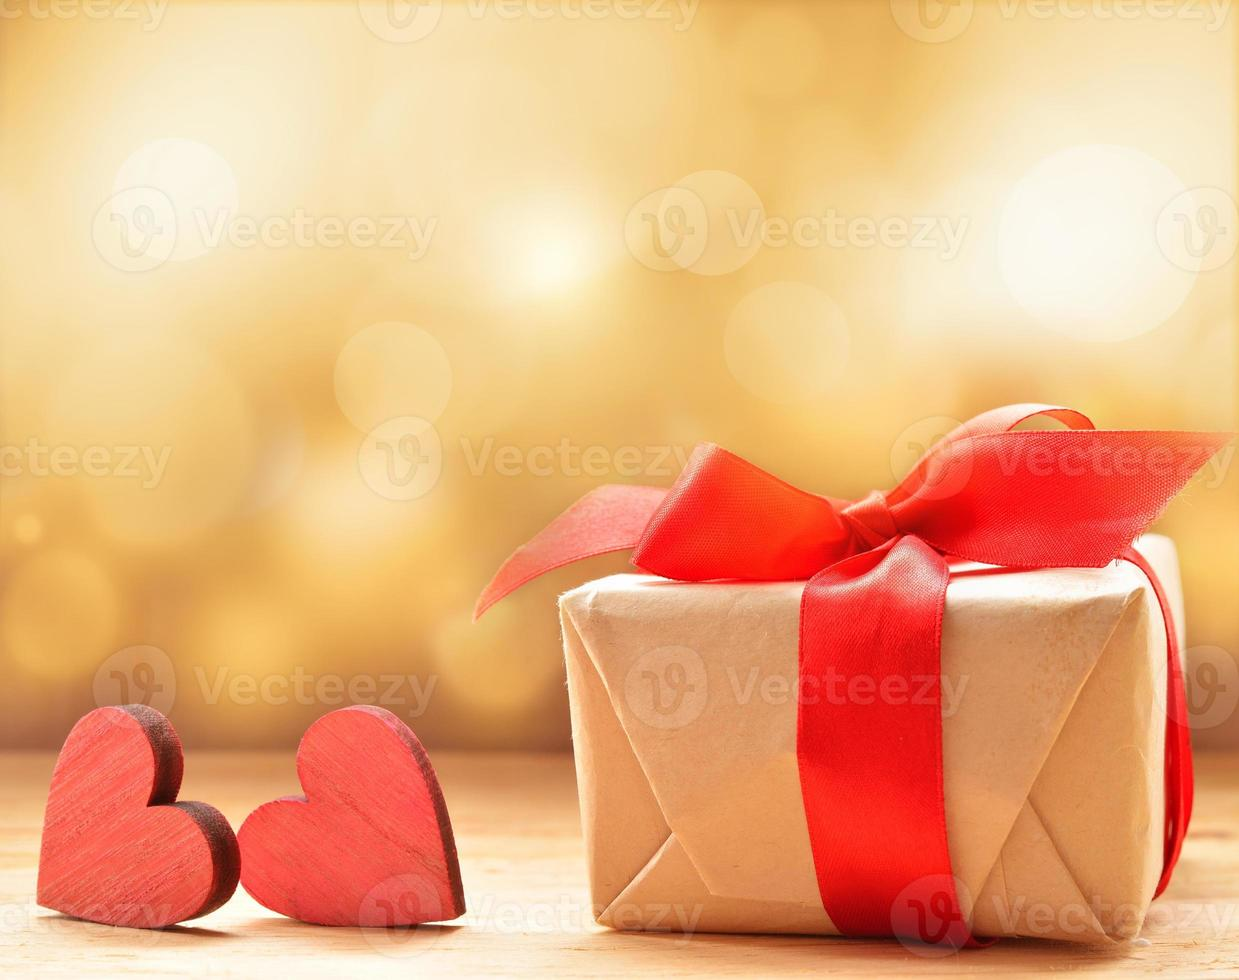 Valentine's gift with red wooden hearts photo